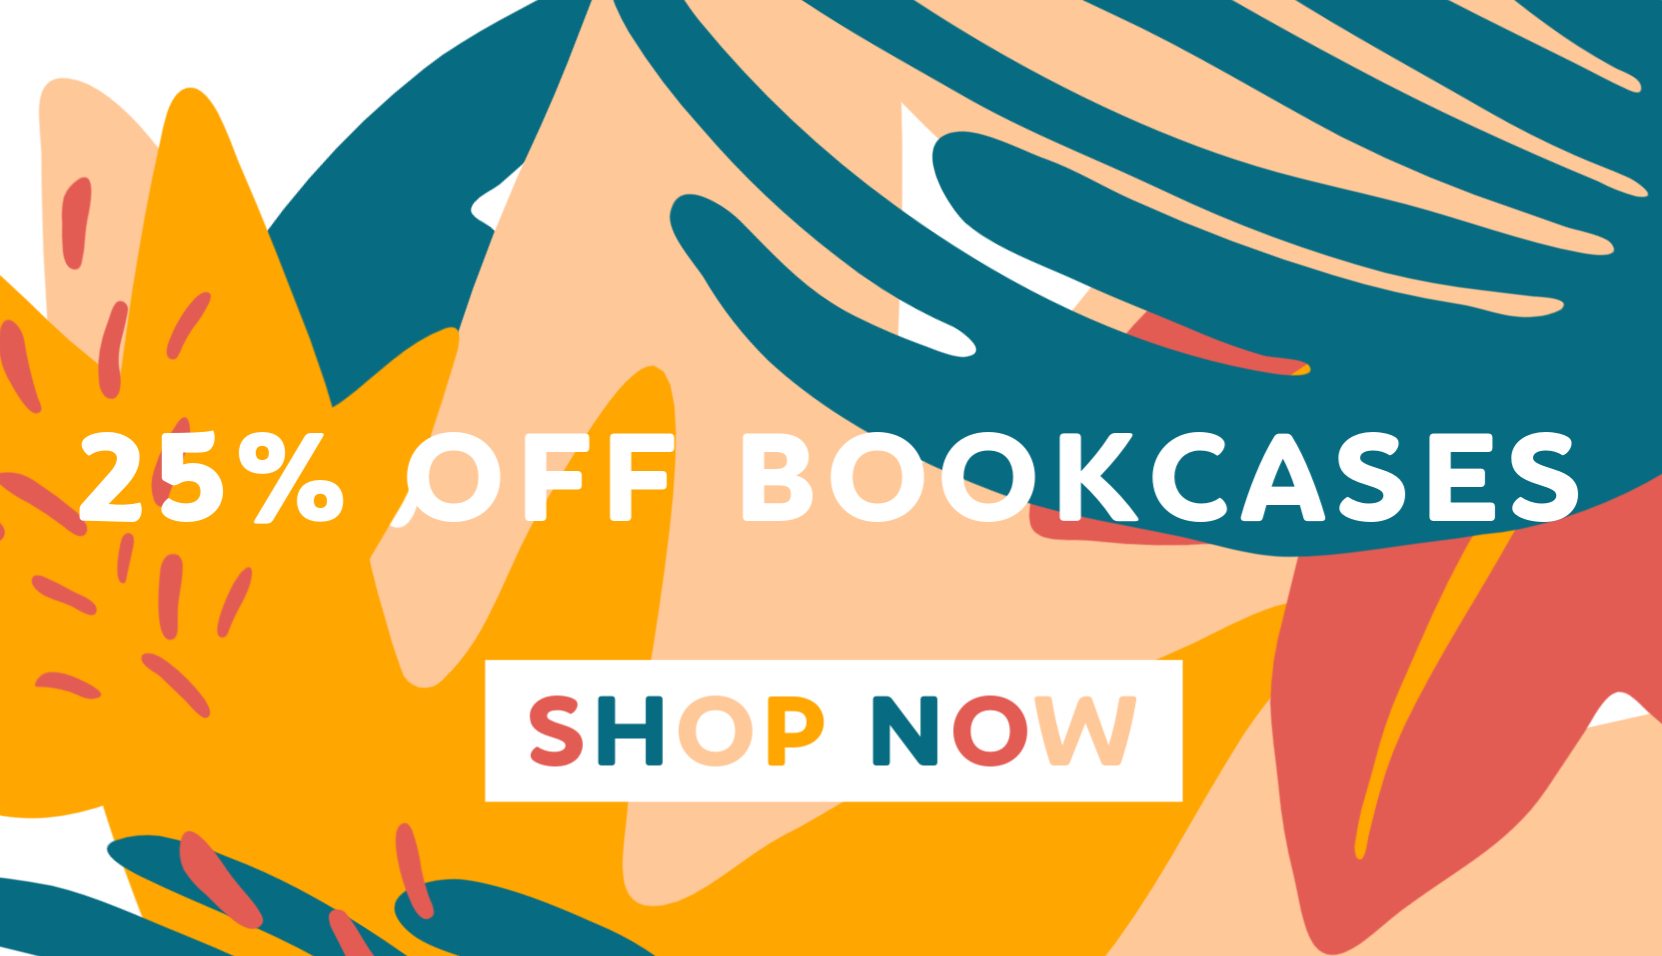 25% off bookcase